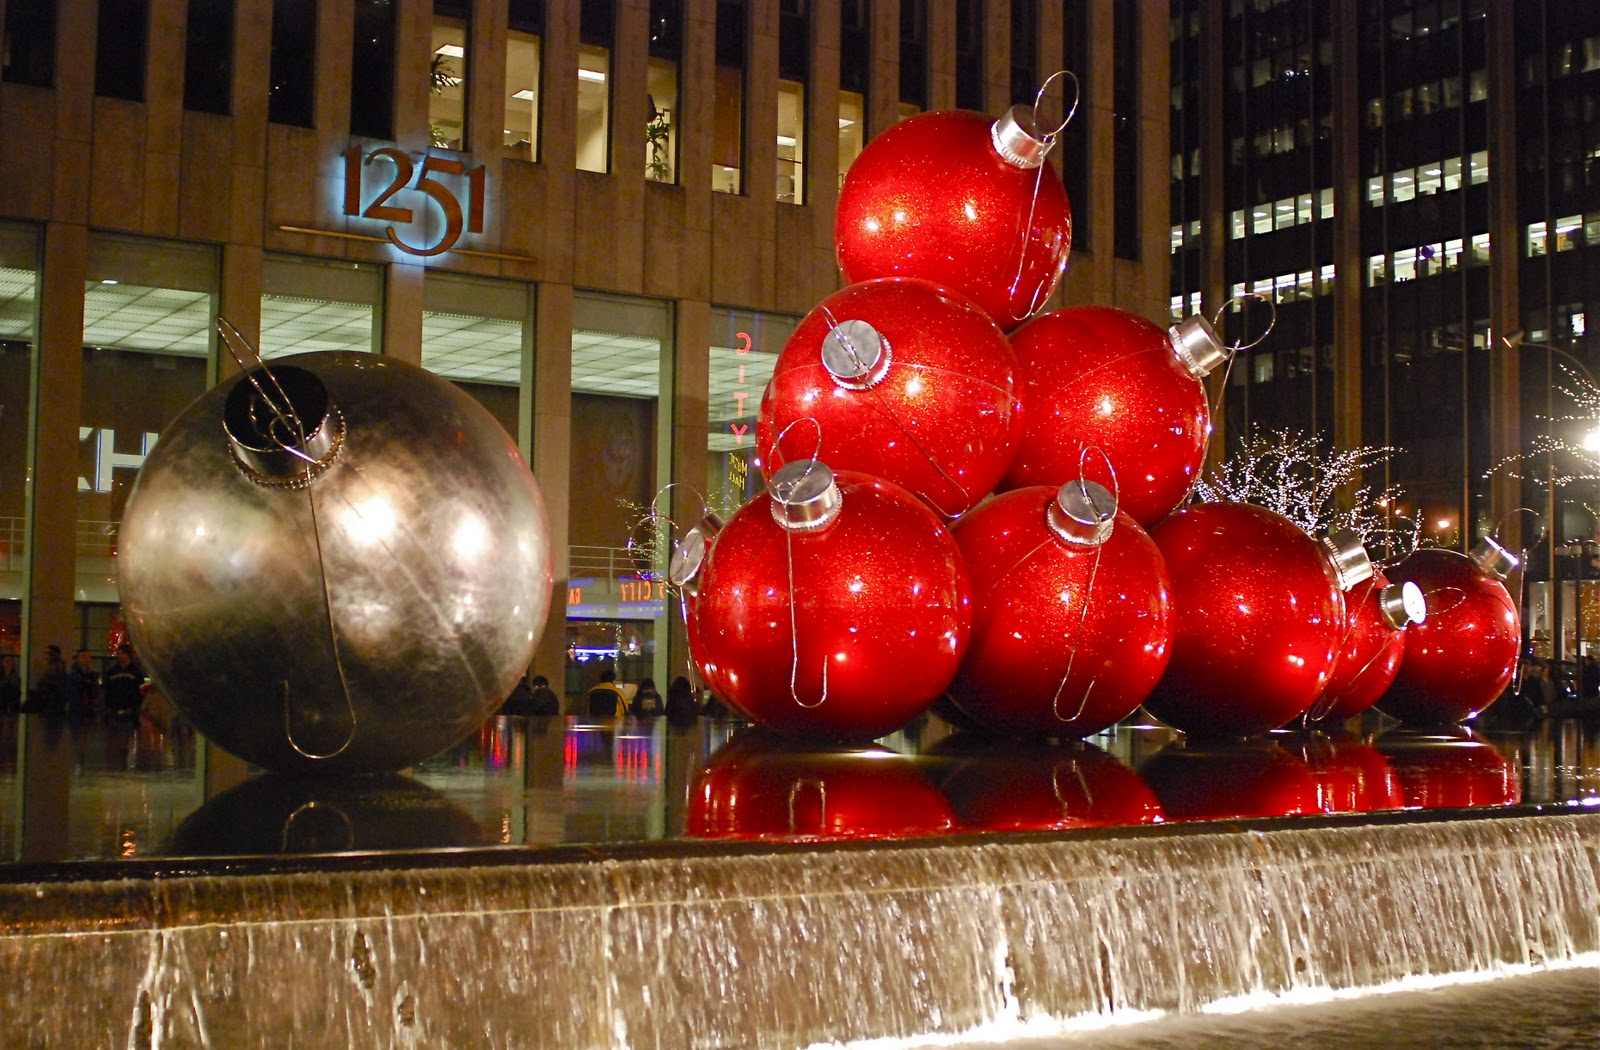 giant christmas ornaments at 1251 sixth avenue - Big Christmas Decorations